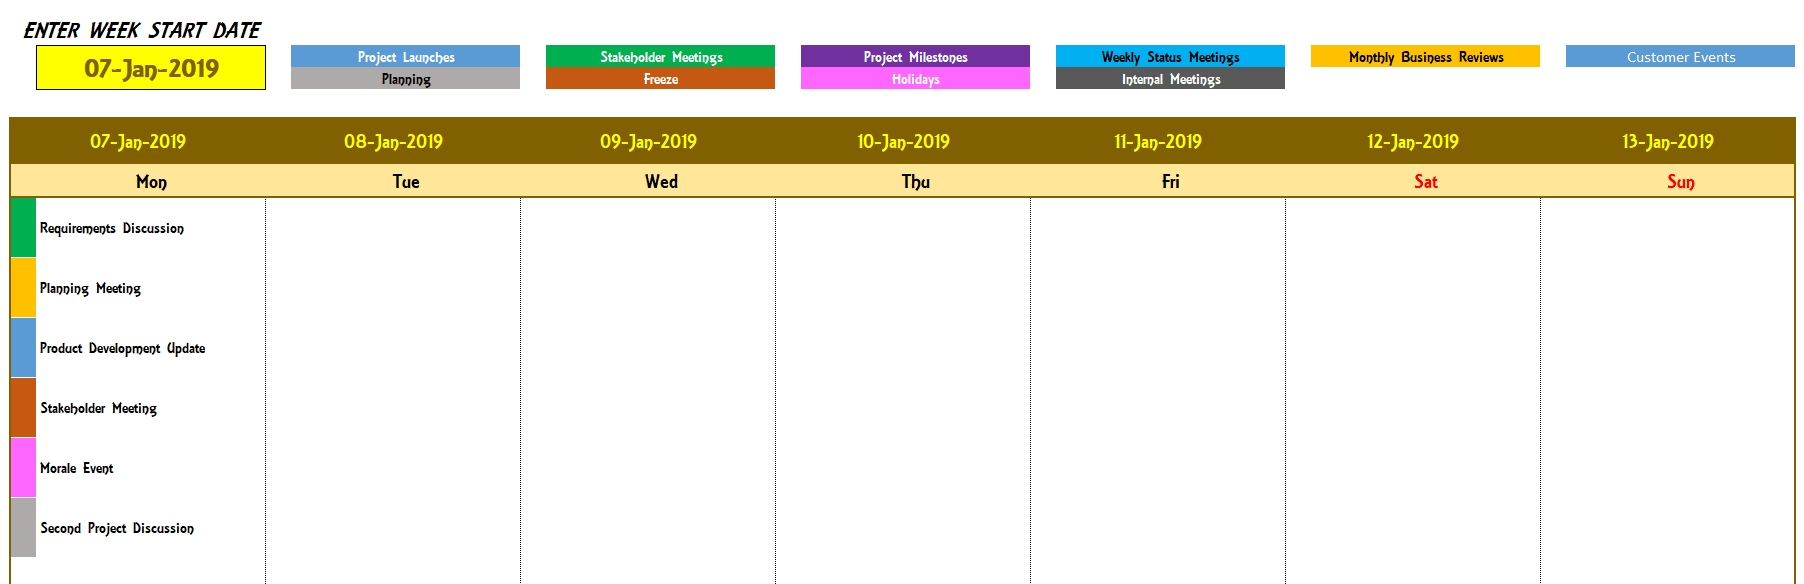 Excel Calendar Template - Excel Calendar 2019, 2020 Or Any Year within Monthly Event Calendar Template Excel